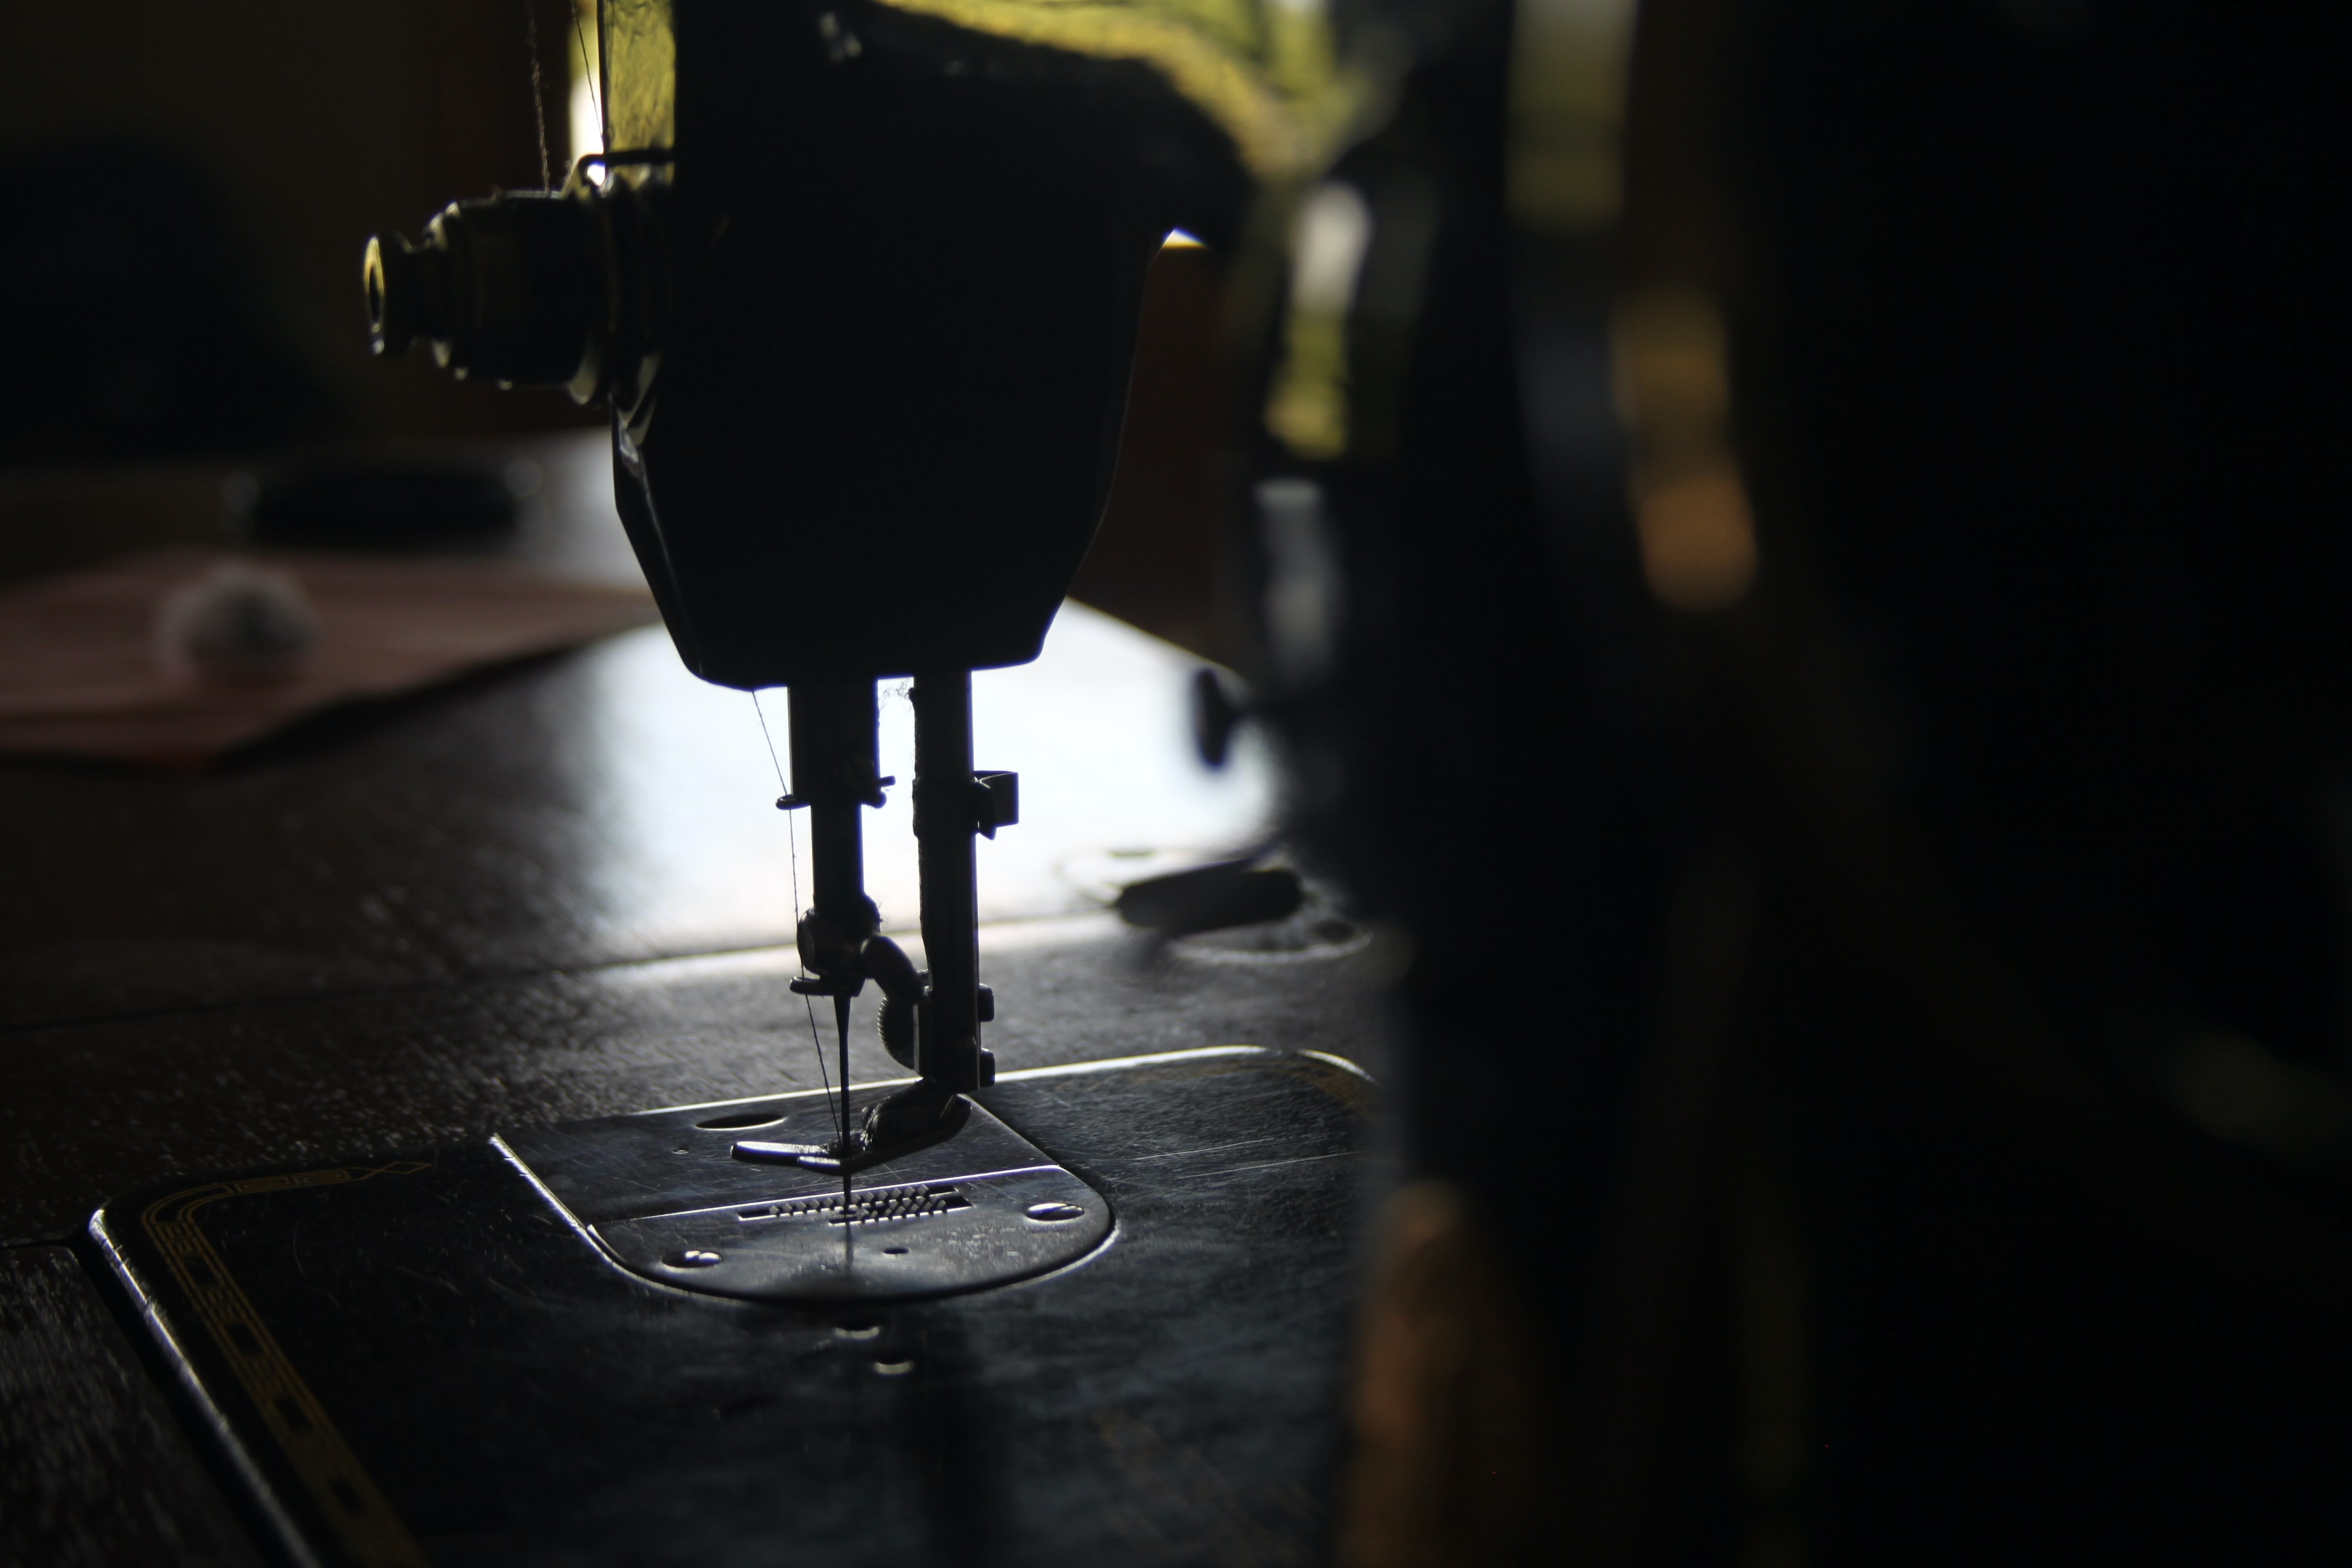 Macro of a sewing machine stitching in a dark room